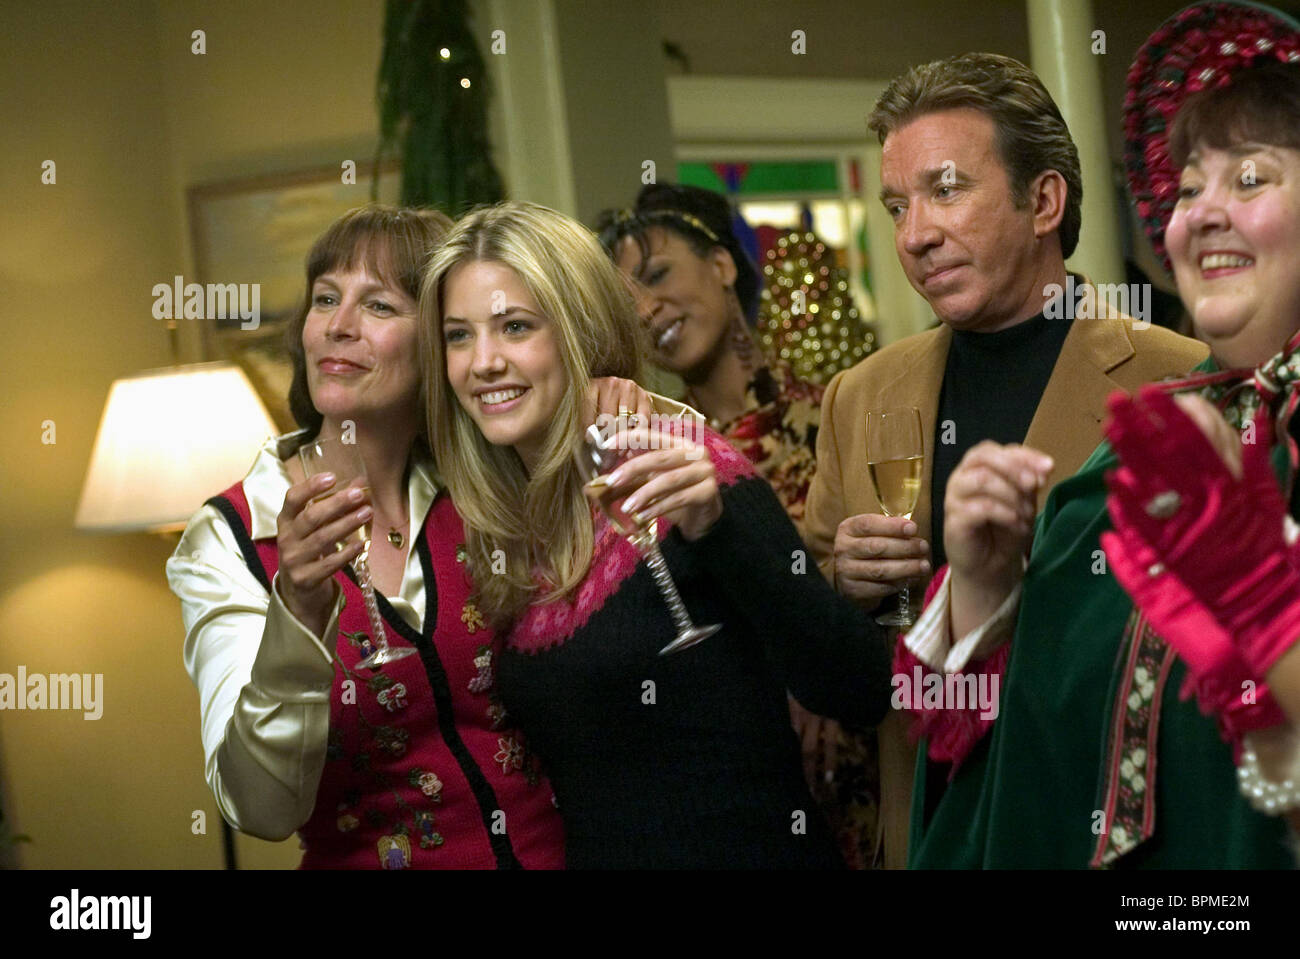 JAMIE LEE CURTIS JULIE GONZALO & TIM ALLEN CHRISTMAS WITH THE ...